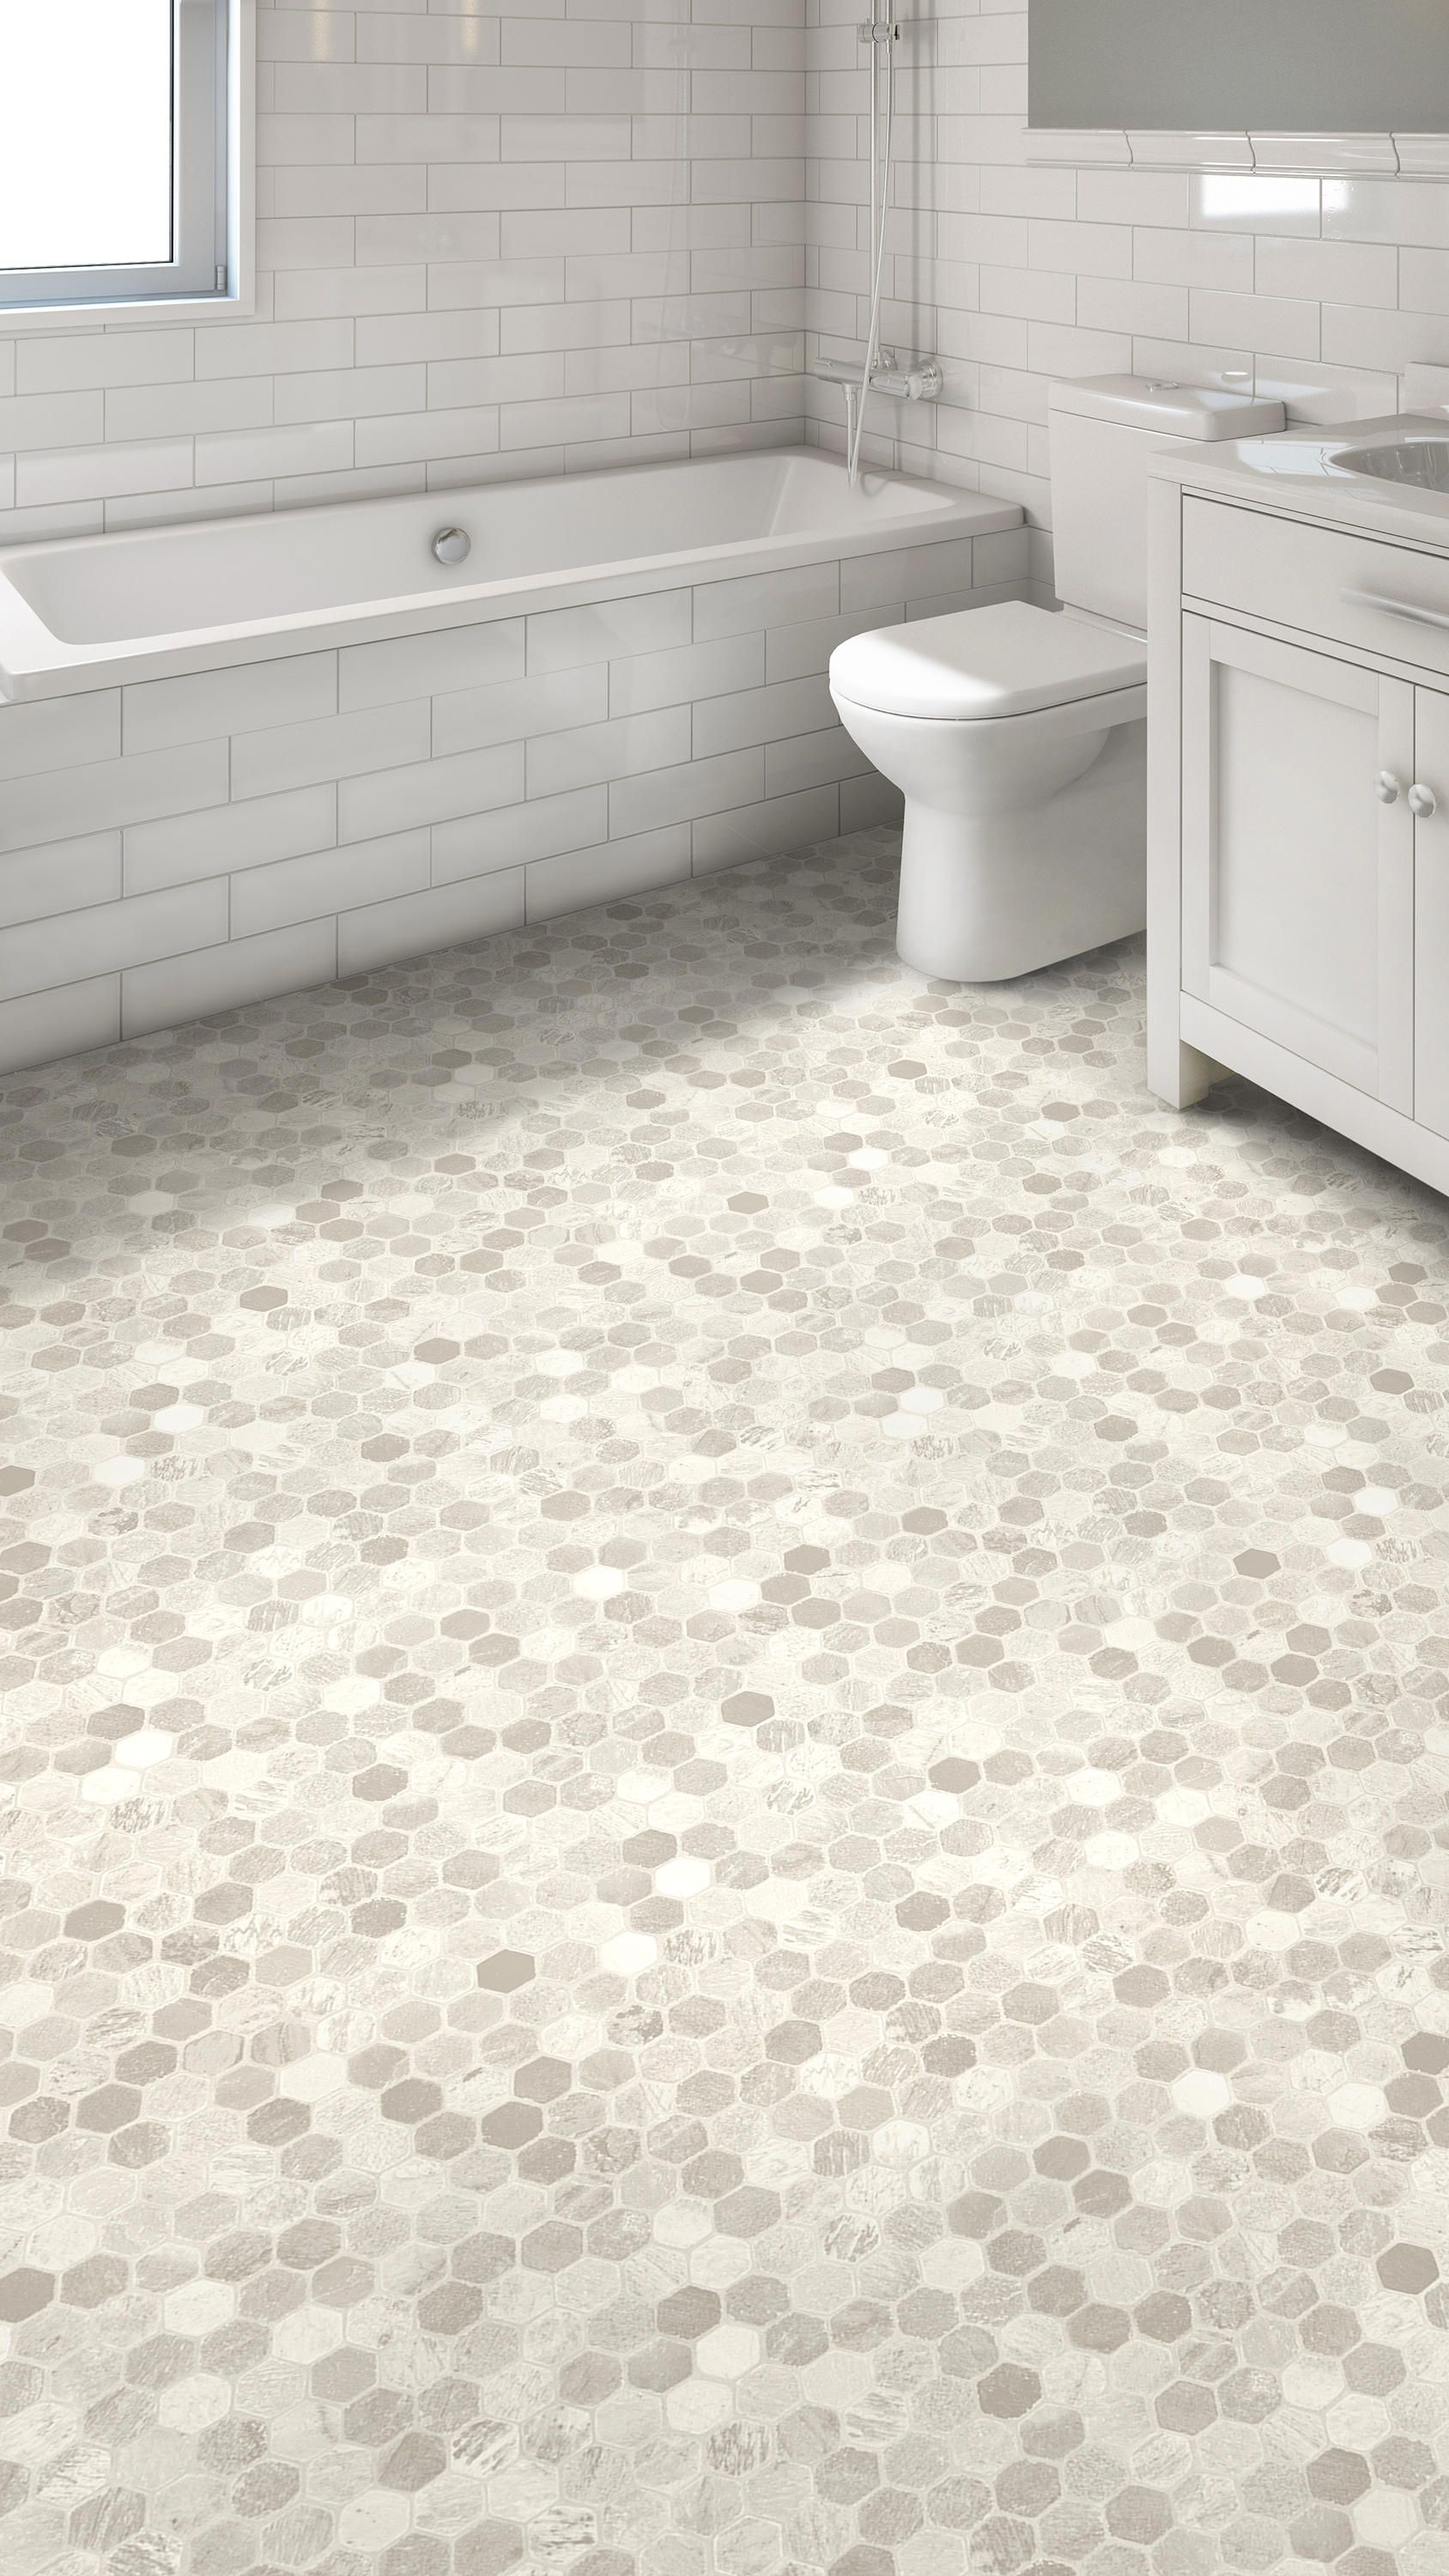 top 5 bathroom flooring options for your home — i-renovate